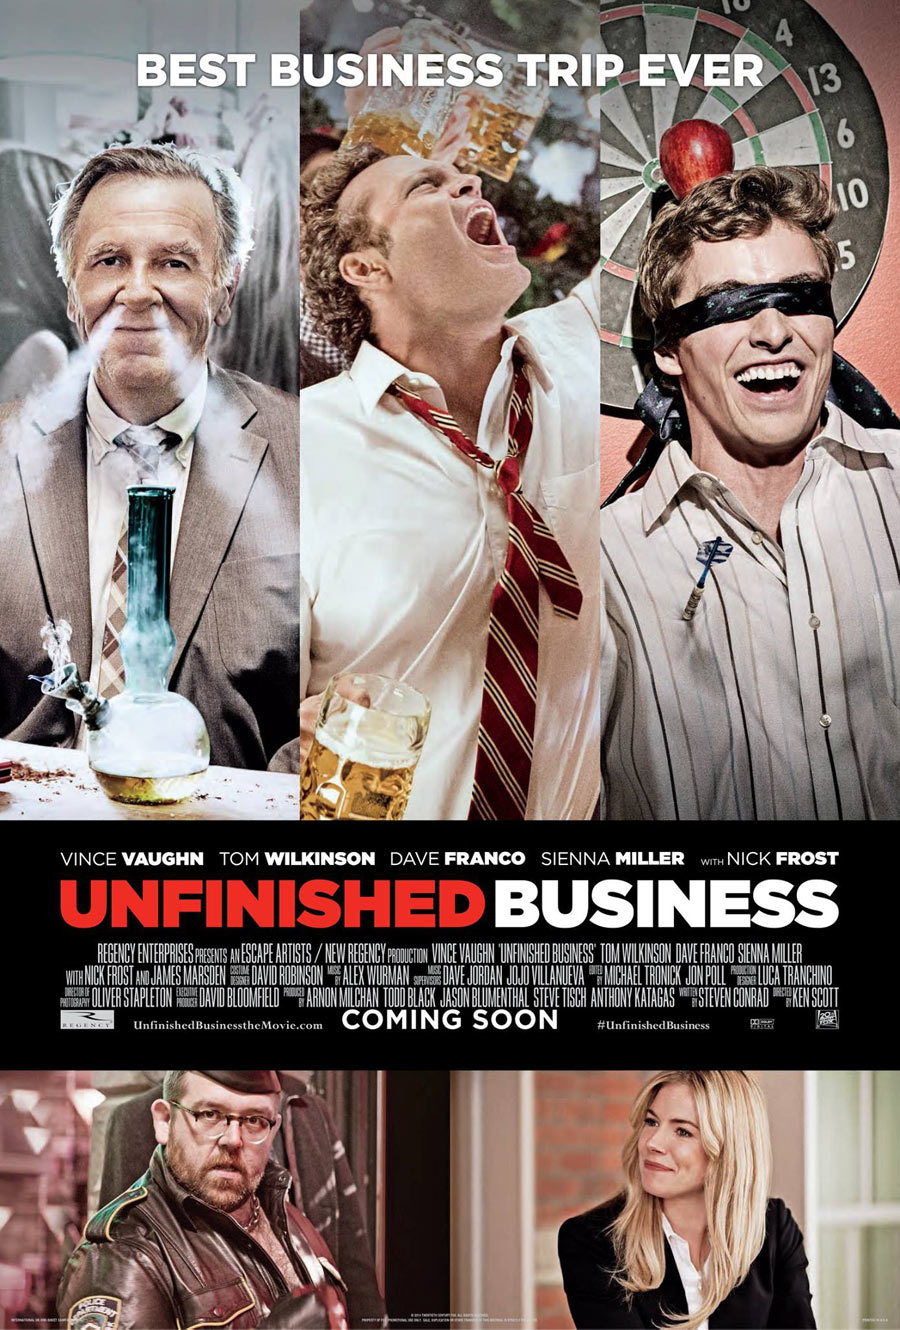 unfinished_business_movie_poster_1